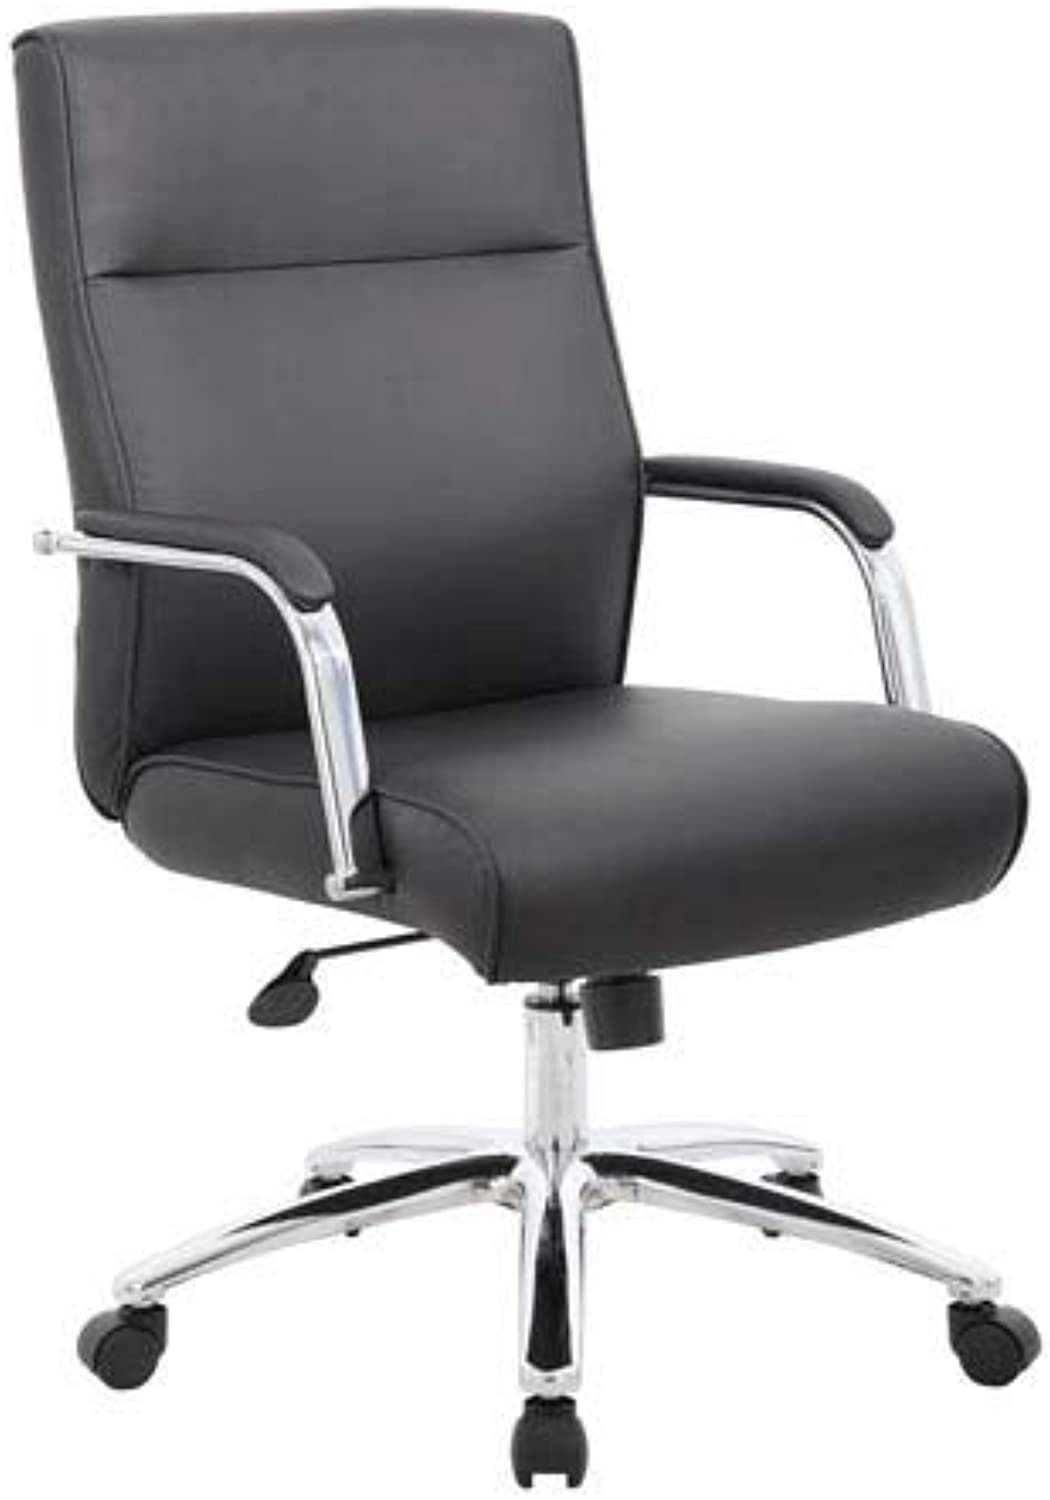 Boss Office Products (BOSXK) B696C-BK Modern Executive Conference Chair